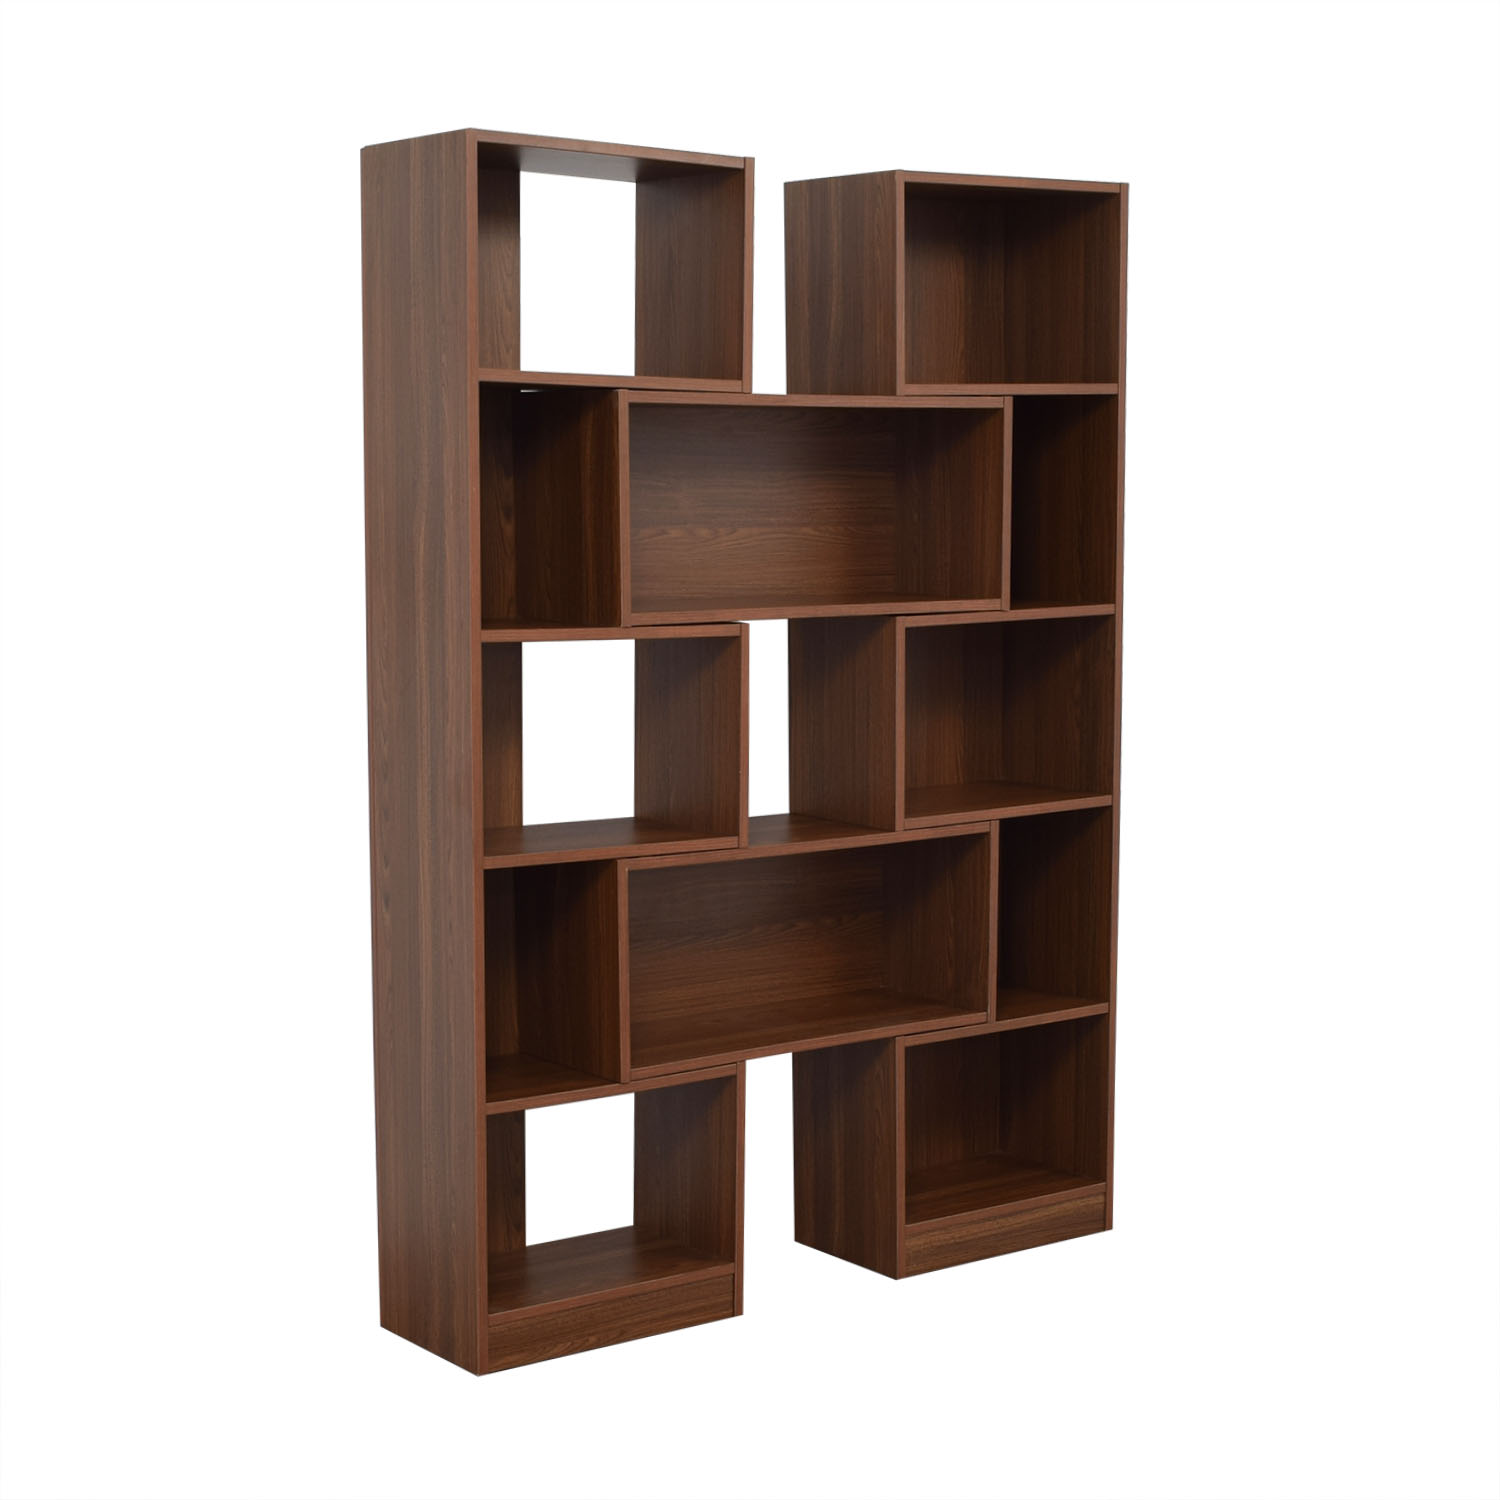 Crate & Barrel Crate & Barrel Puzzle Bookshelf second hand